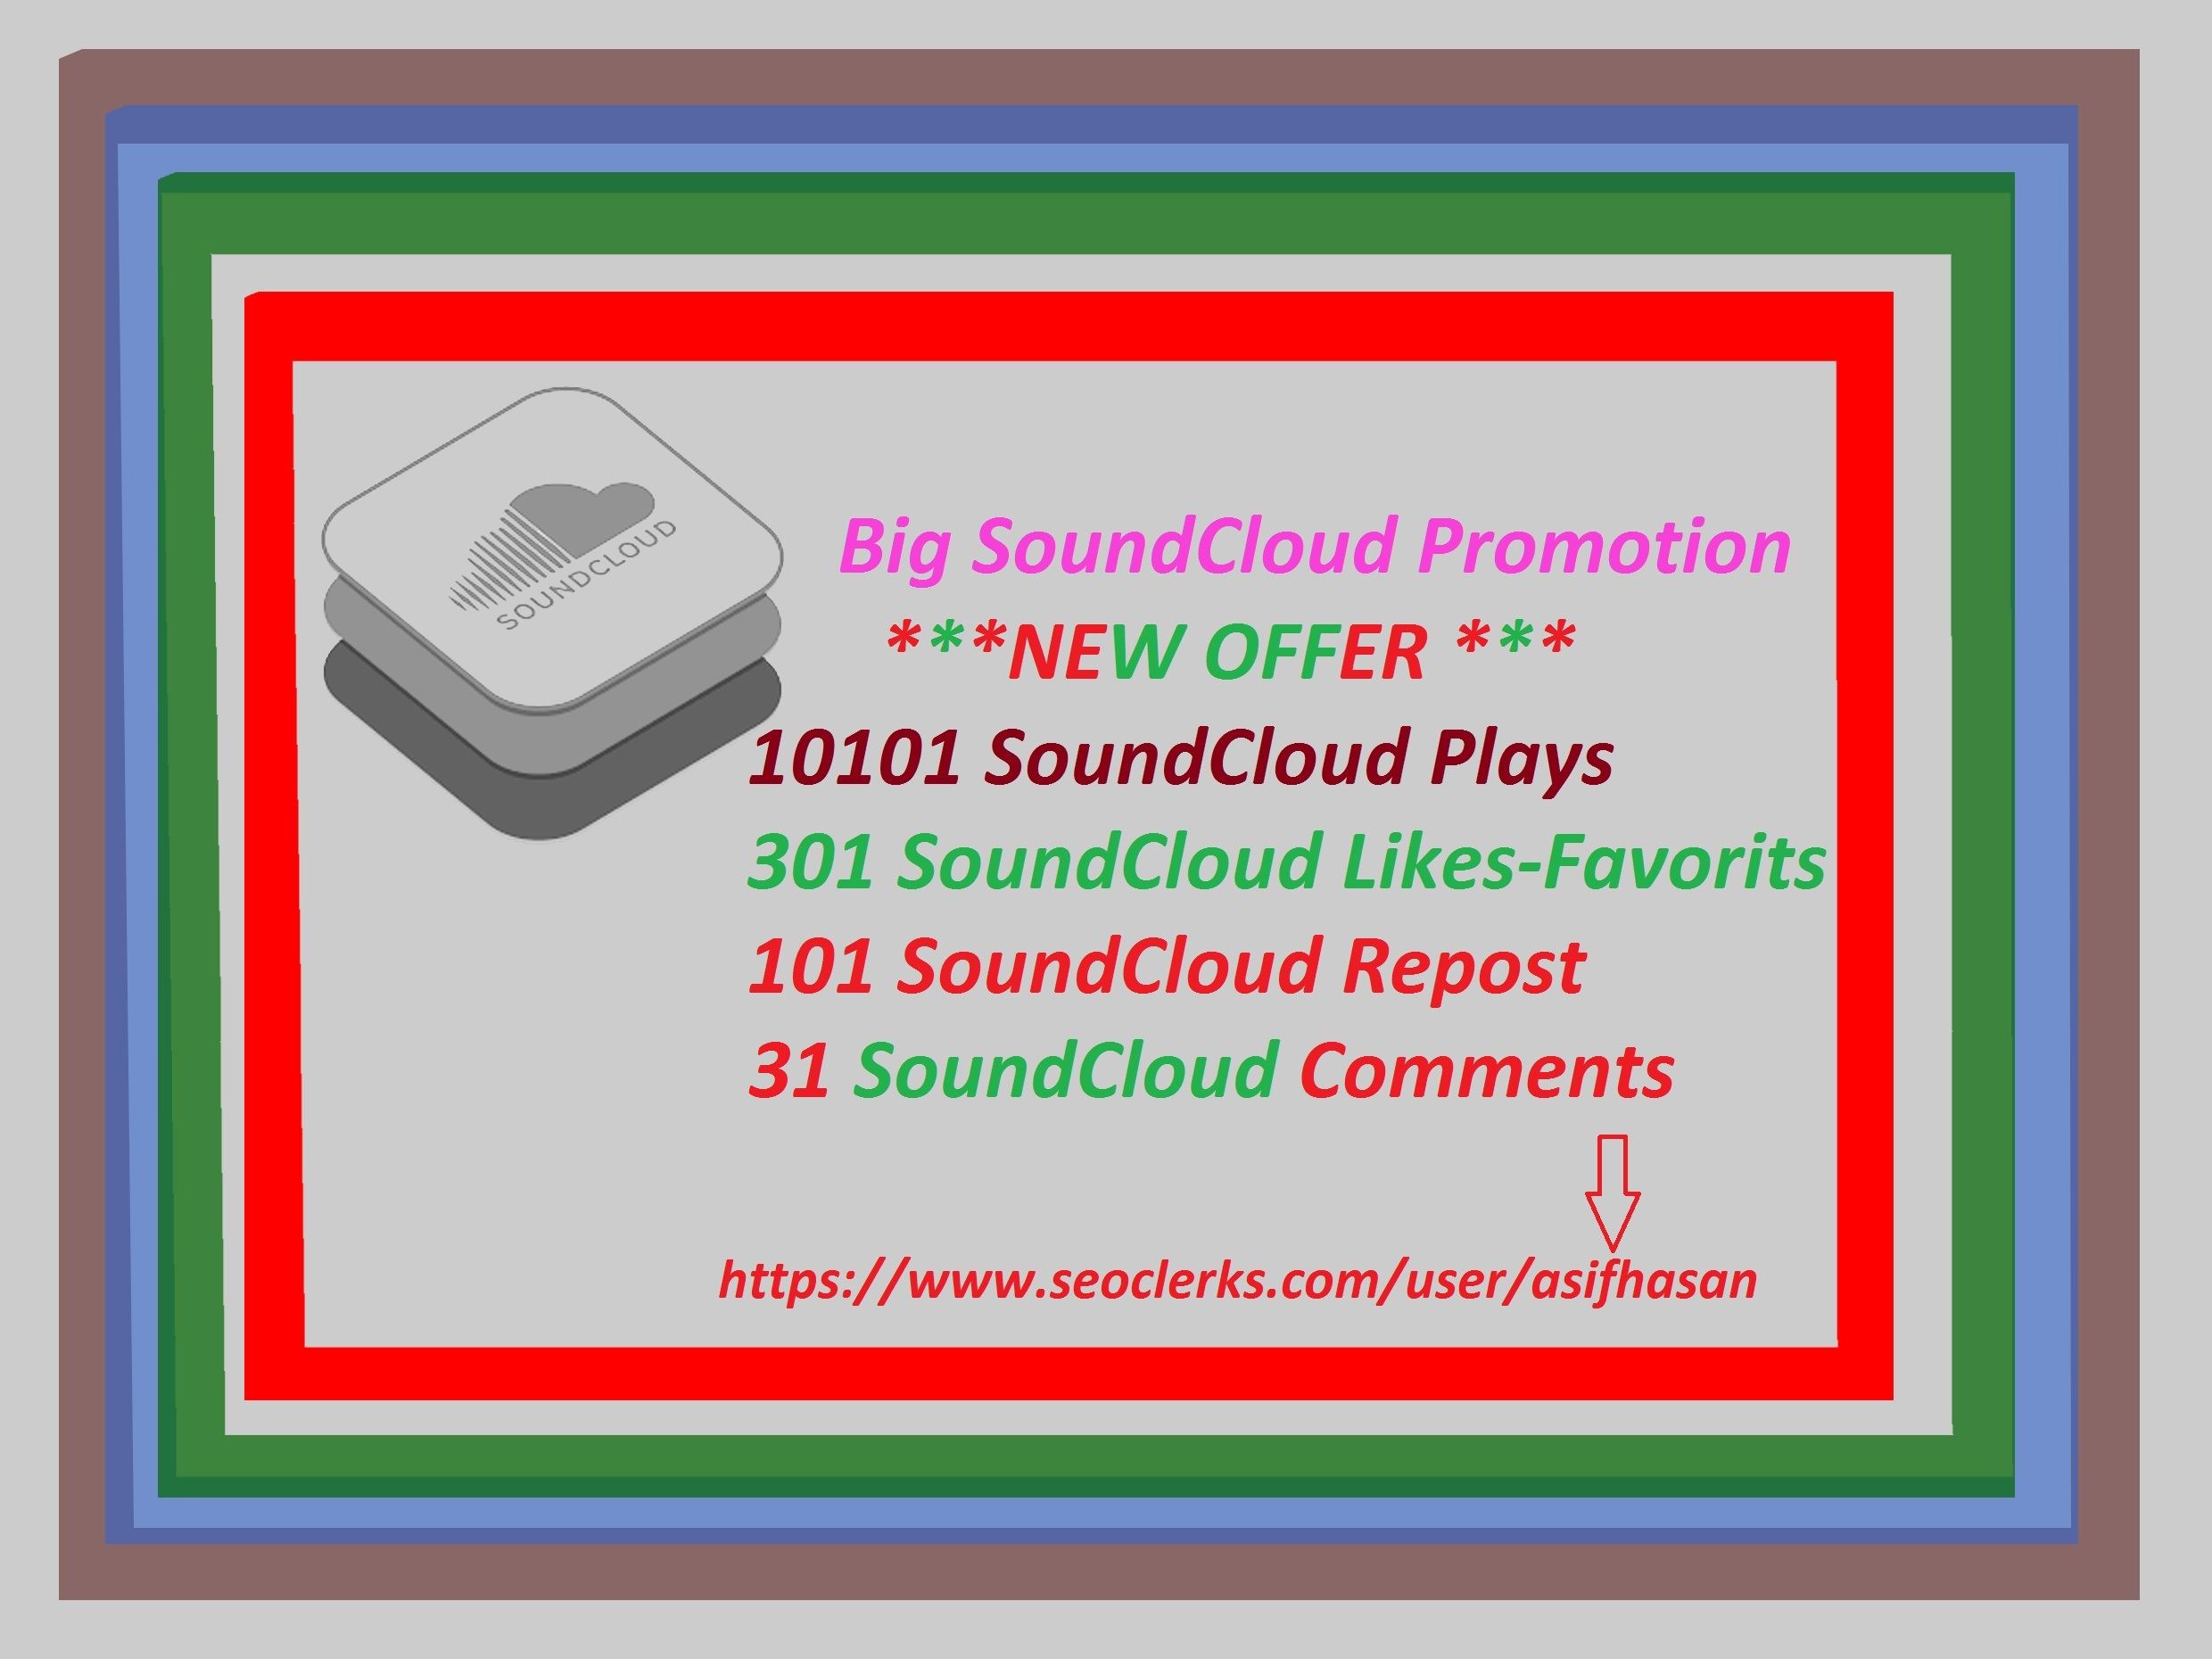 GET BIG  SOUNDCLOUD  PROMOTION 10101  PLAYS WITH 301 LIKES-FAVORITS +101 REPOST+ 31 COMMENTS